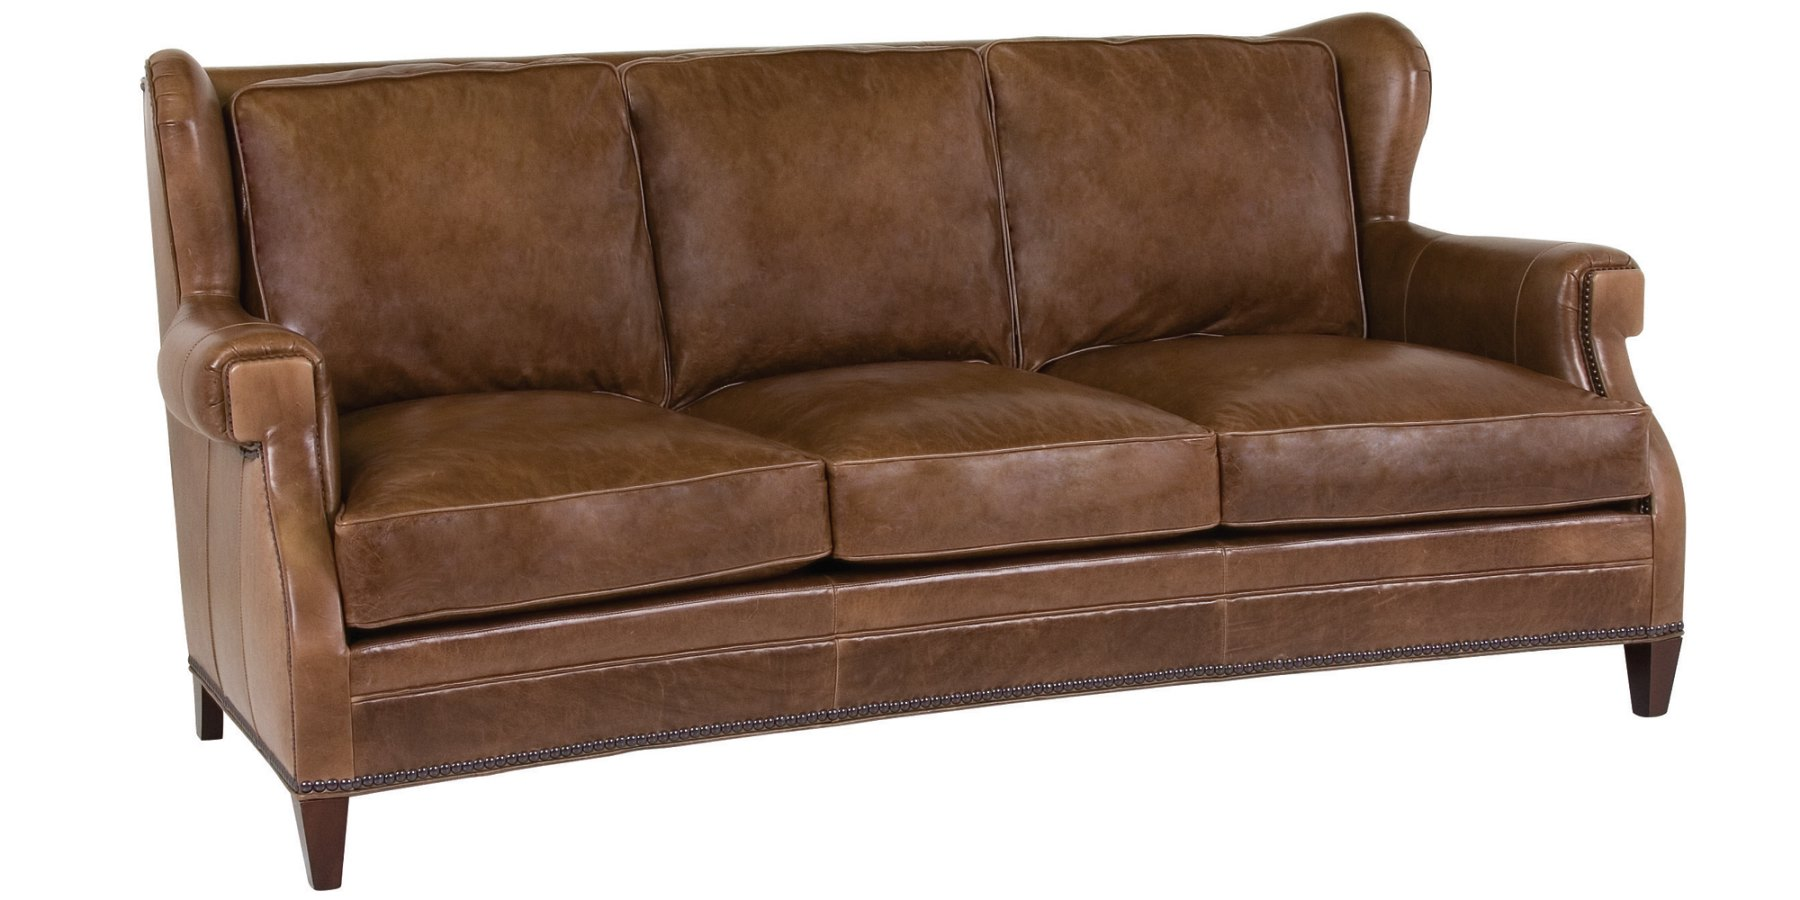 Leather Wingback Sofa Collection Club Furniture : douglas designer style wing back leather sofa w nailhead trim 1 from www.clubfurniture.com size 1800 x 900 jpeg 171kB